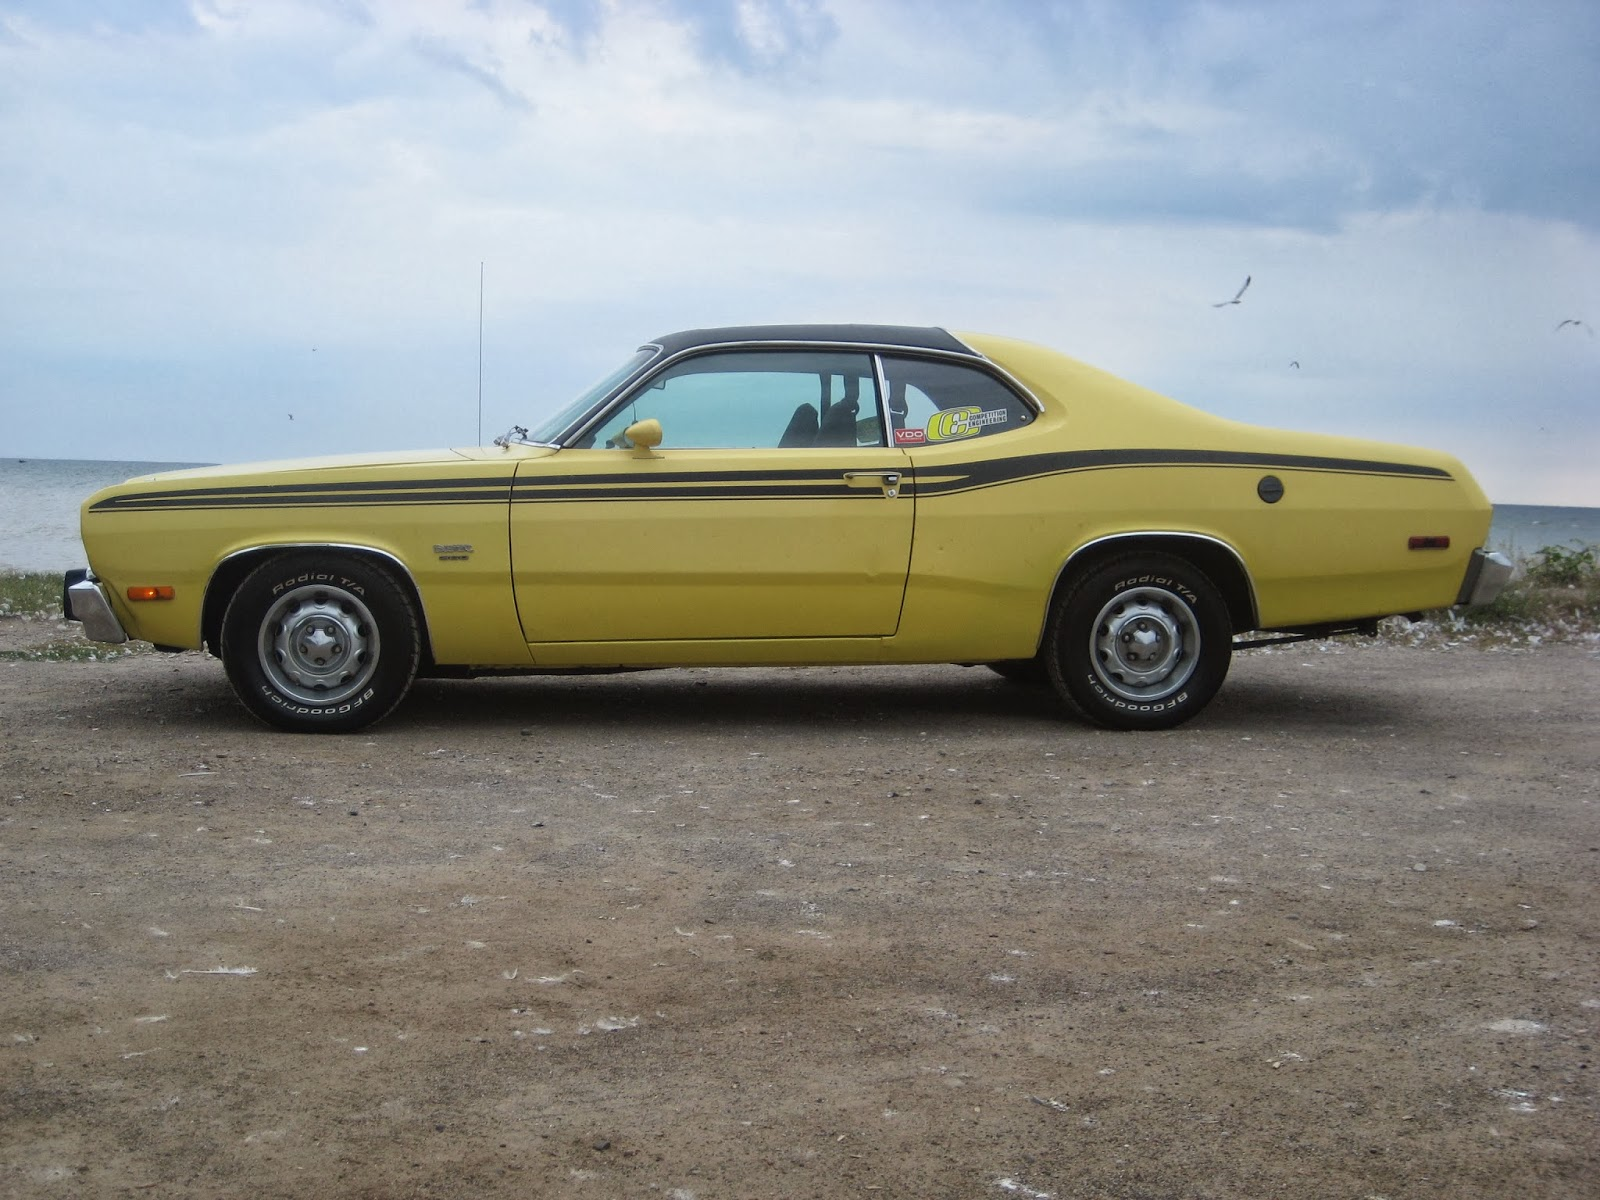 File:Plymouth Duster (Les chauds vendredis '13).JPG - Wikimedia ...